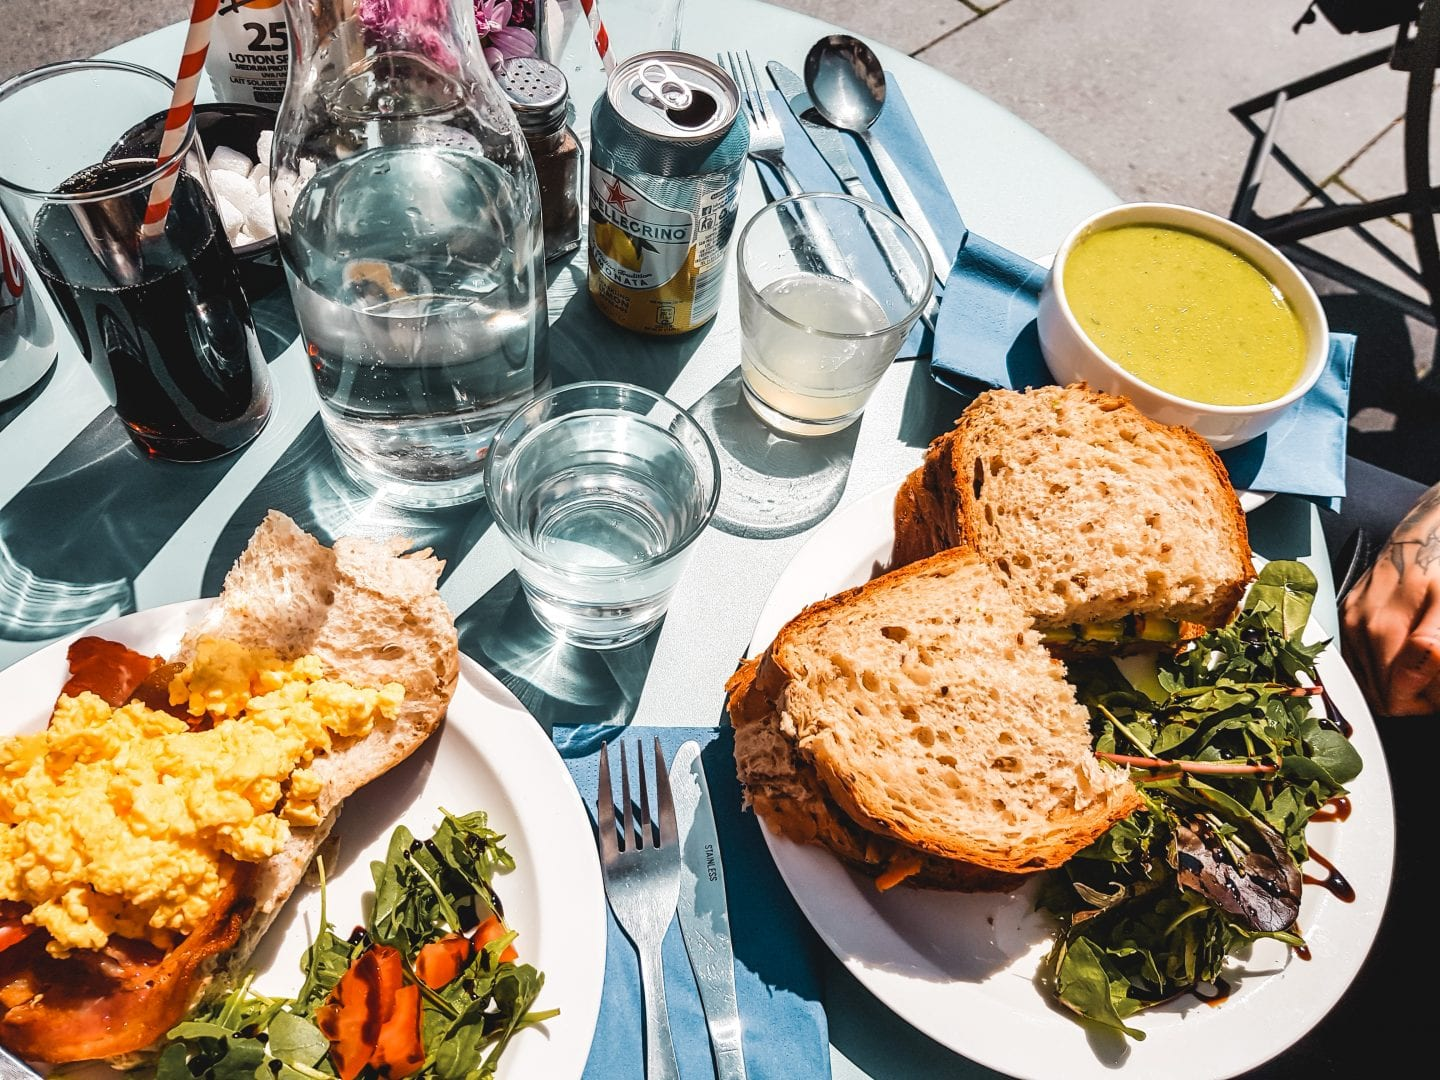 lunch: sandwiches and soup in the sun